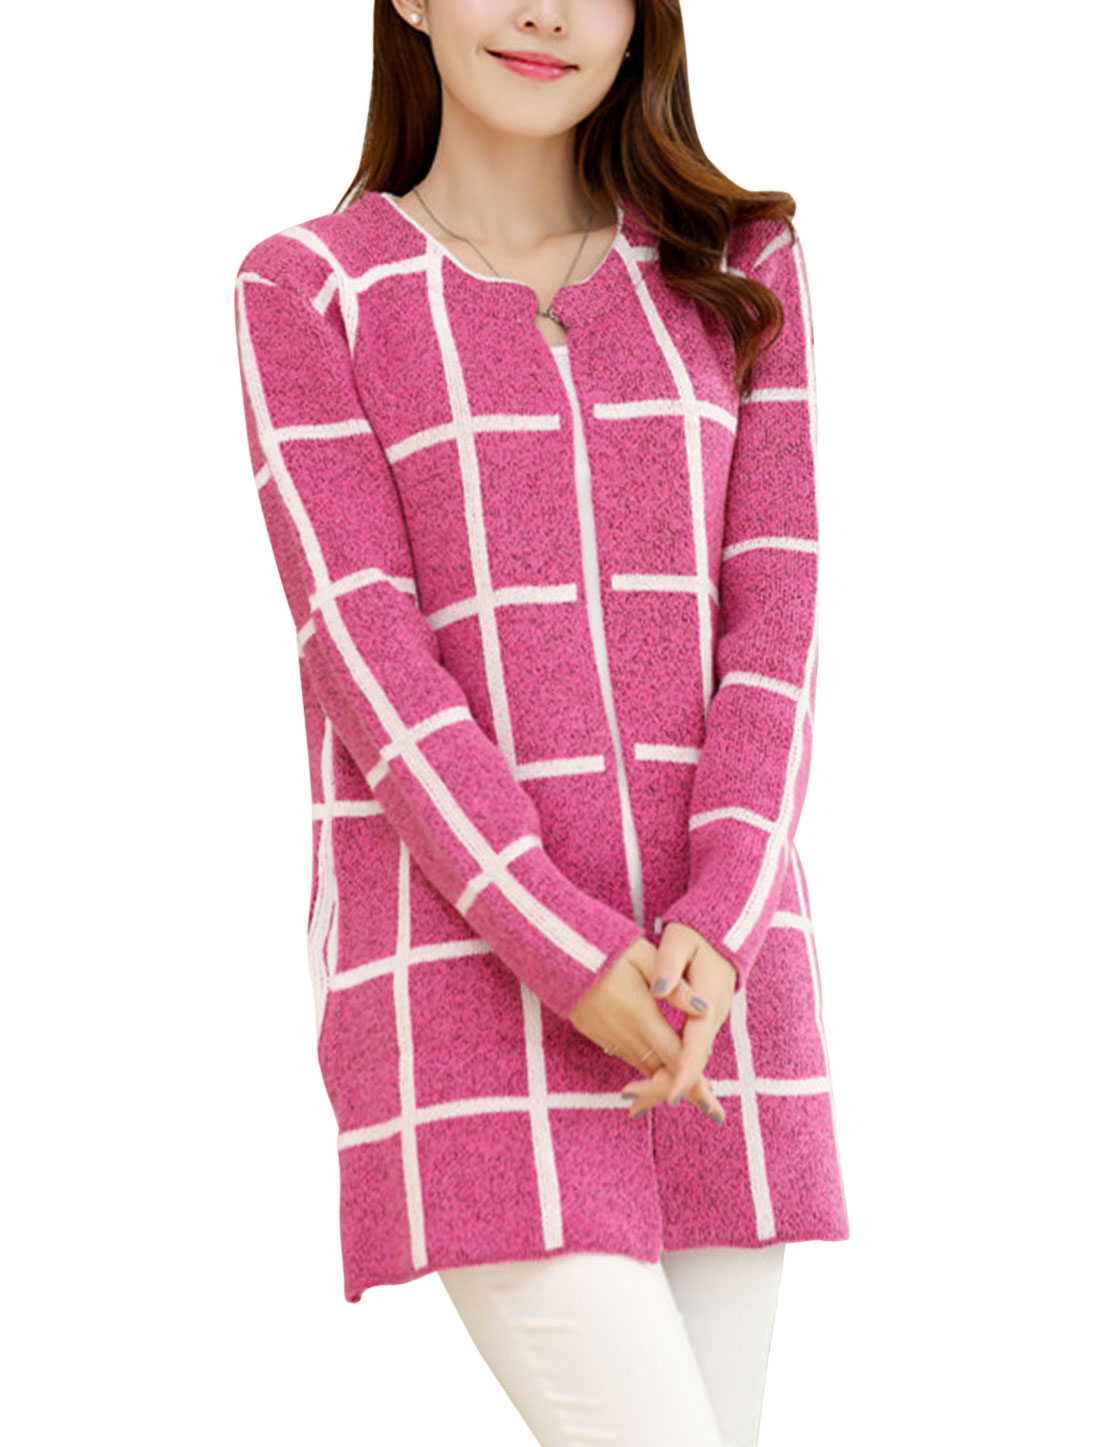 Ladies Front Opening Plaids Stretchy Tunic Leisure Cardigan Fuchsia S